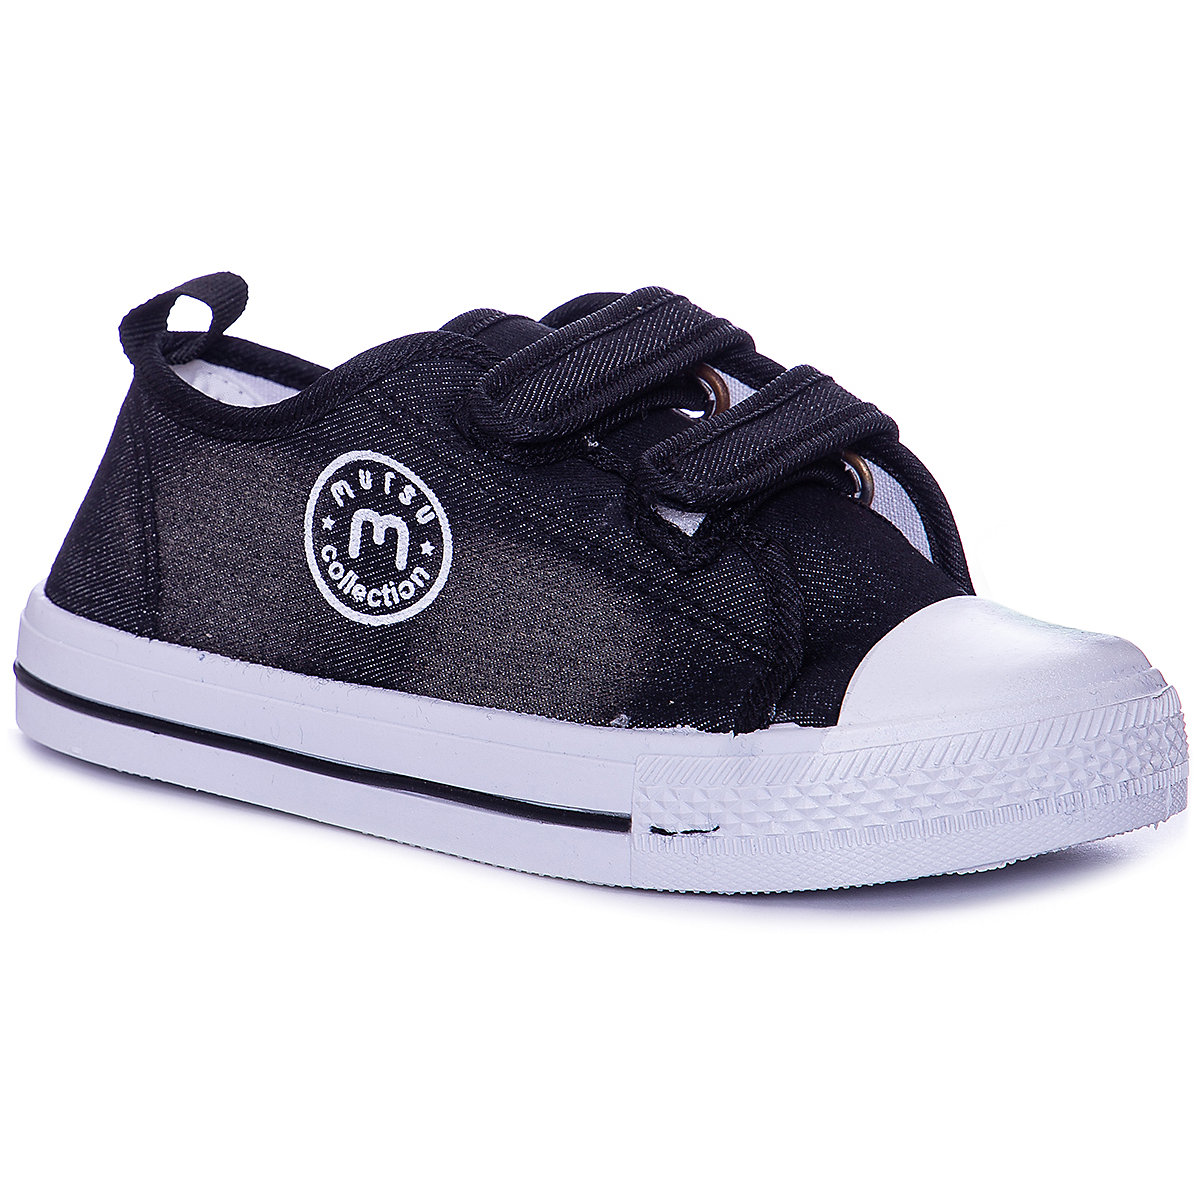 Фото - MURSU Children Casual Shoes 10612172 sneakers running shoes for children Black sport Boys textile wen design hand painted black shoes ghostbusters high top lace up mens canvas athletic shoes womens flat bottom sneakers